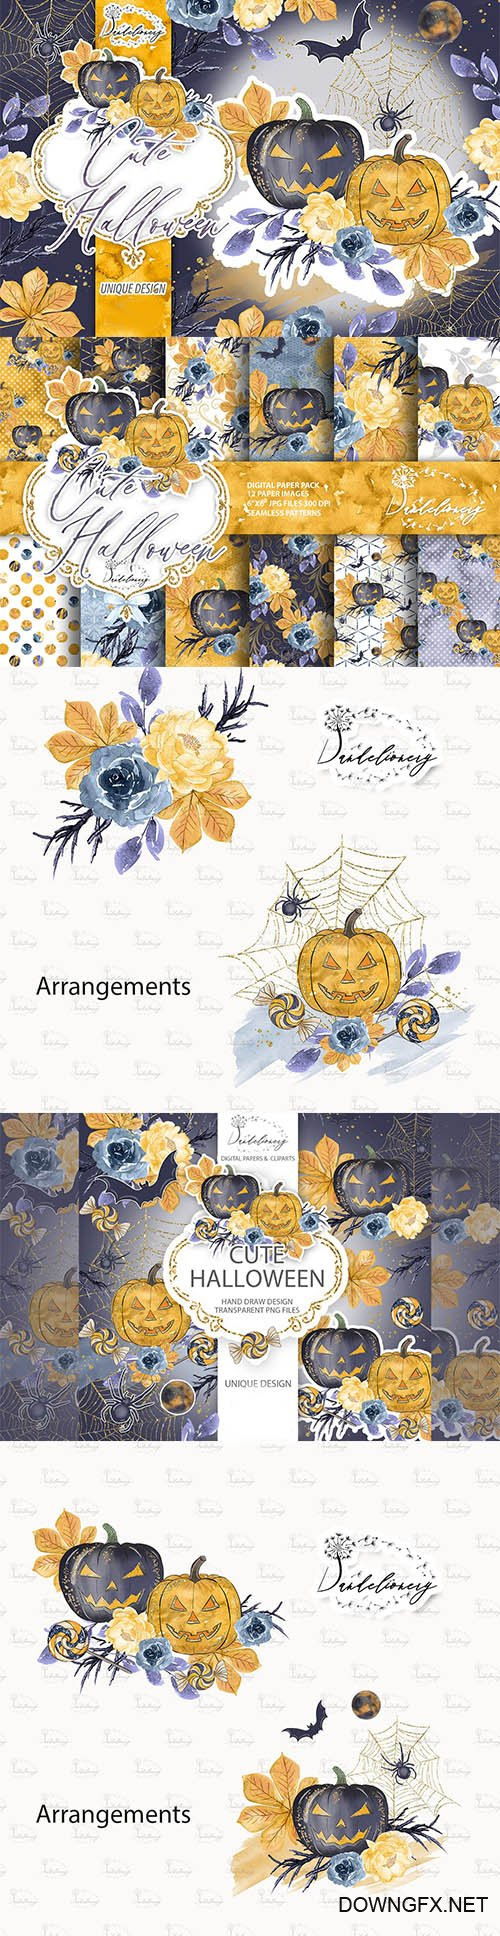 Cute Halloween design and digital paper